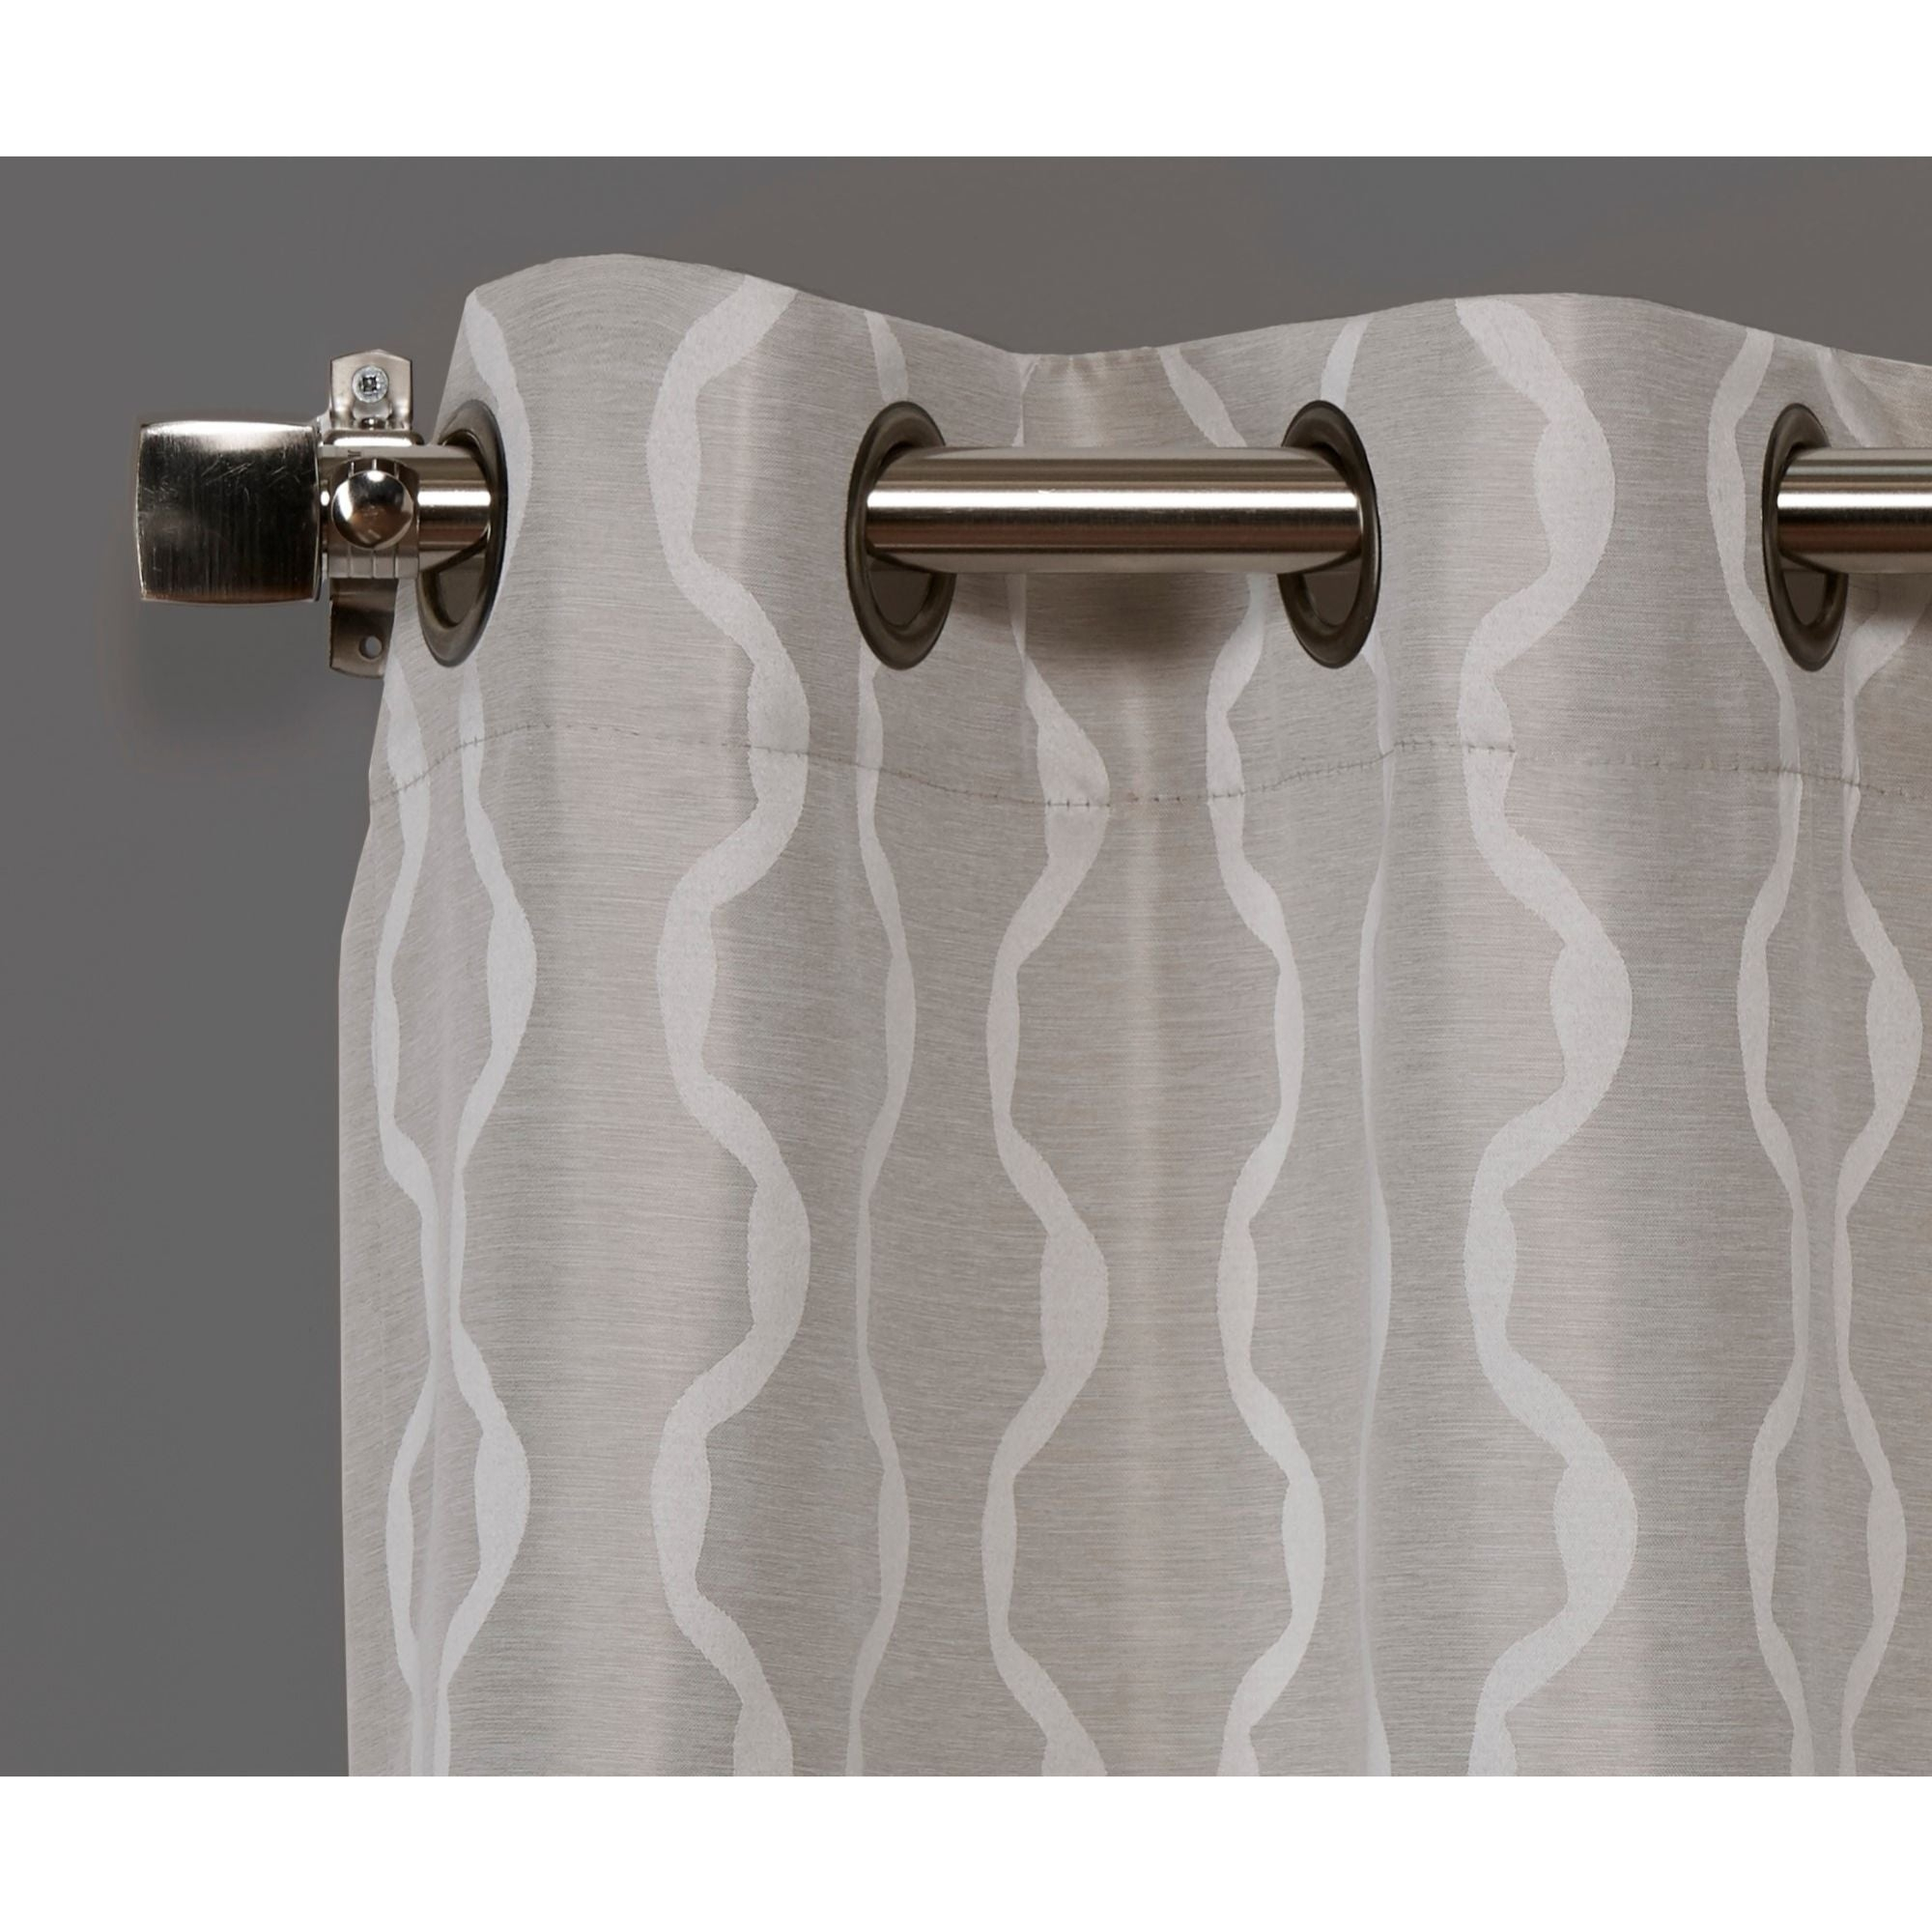 Ati Home Baroque Linen Grommet Top Curtain Panel Pair Inside Baroque Linen Grommet Top Curtain Panel Pairs (View 20 of 20)